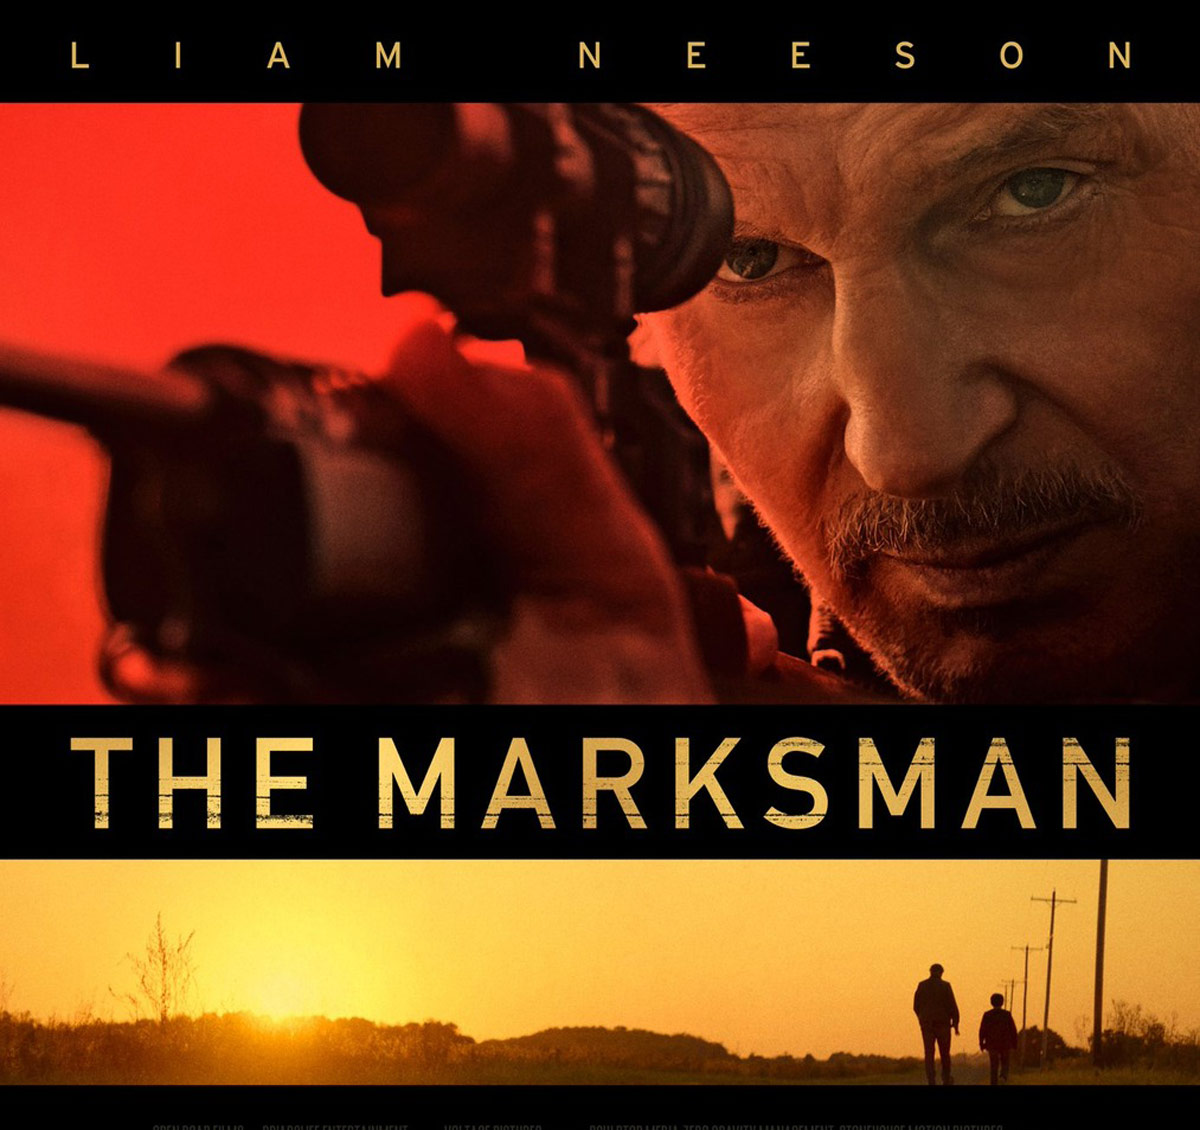 The Marksman starring Liam Neeson tops box office